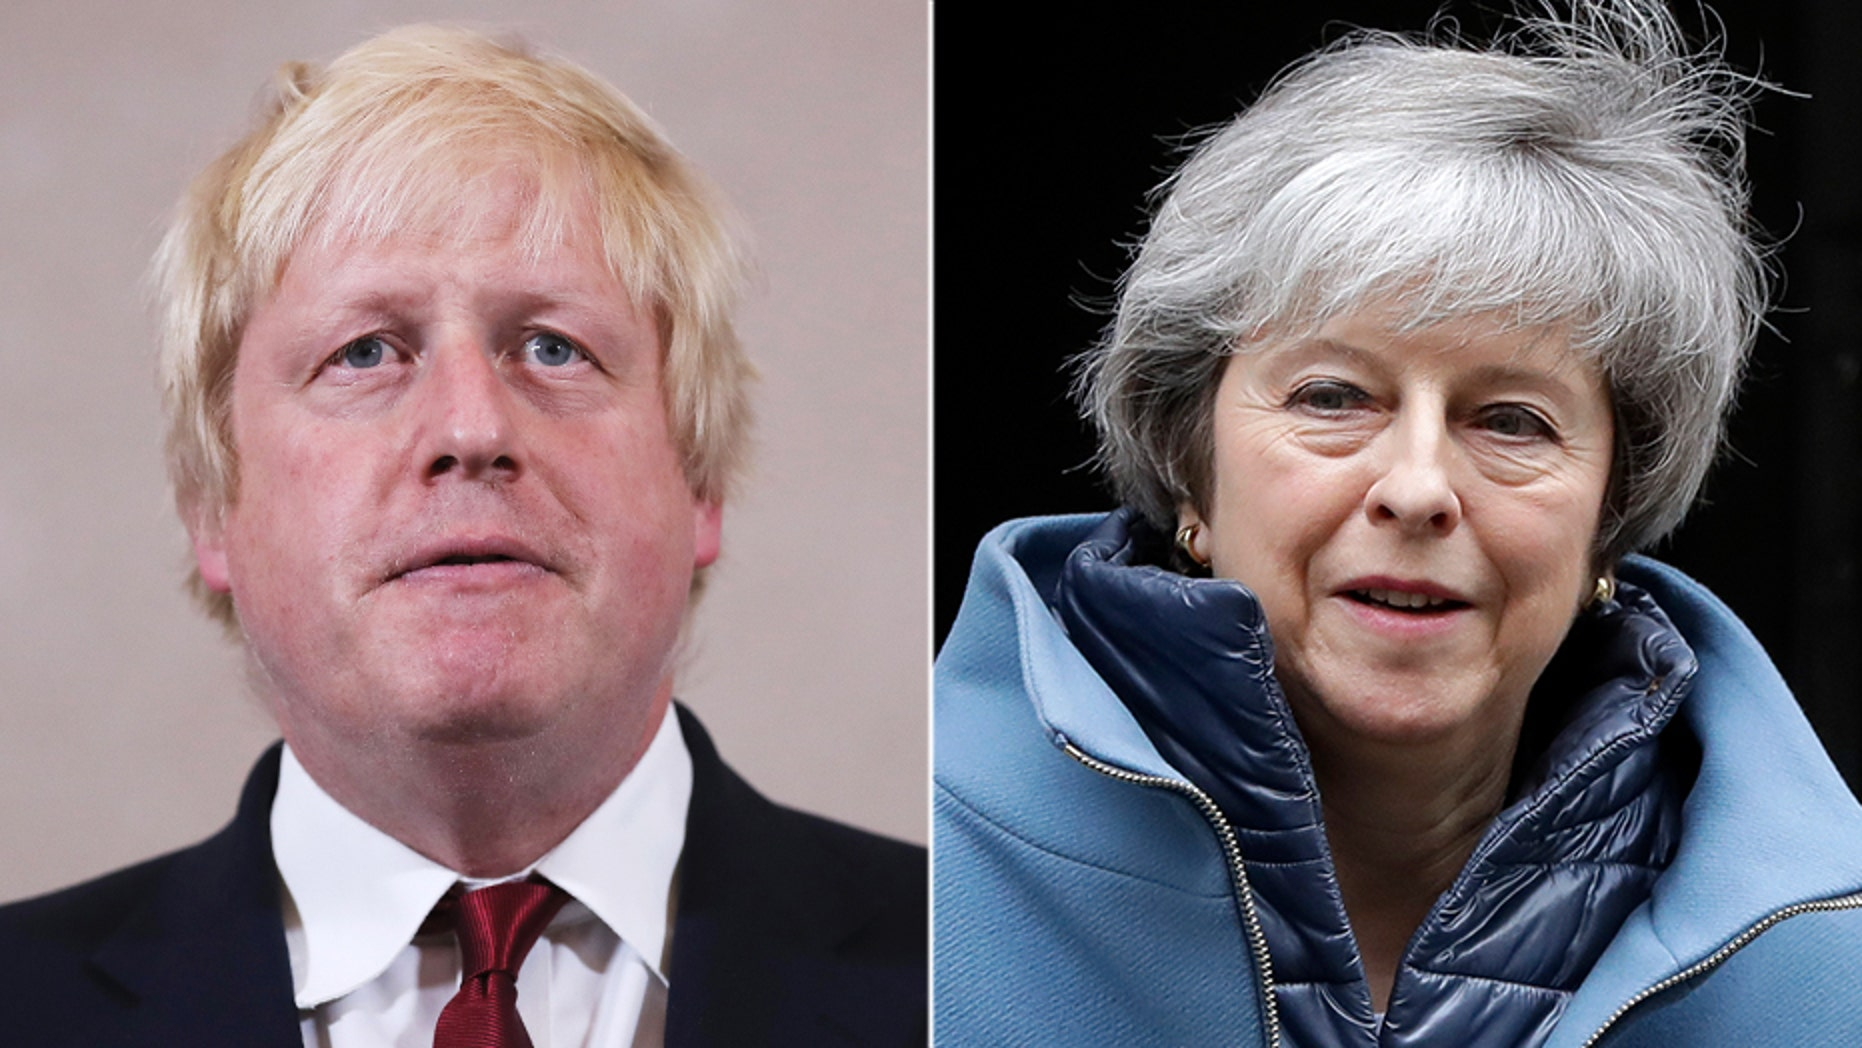 Theresa May (right) is preparing to resign as British Prime Minister as early as this summer, according to The Sun, in an attempt to make sure rival Boris Johnson (left) does not get the job